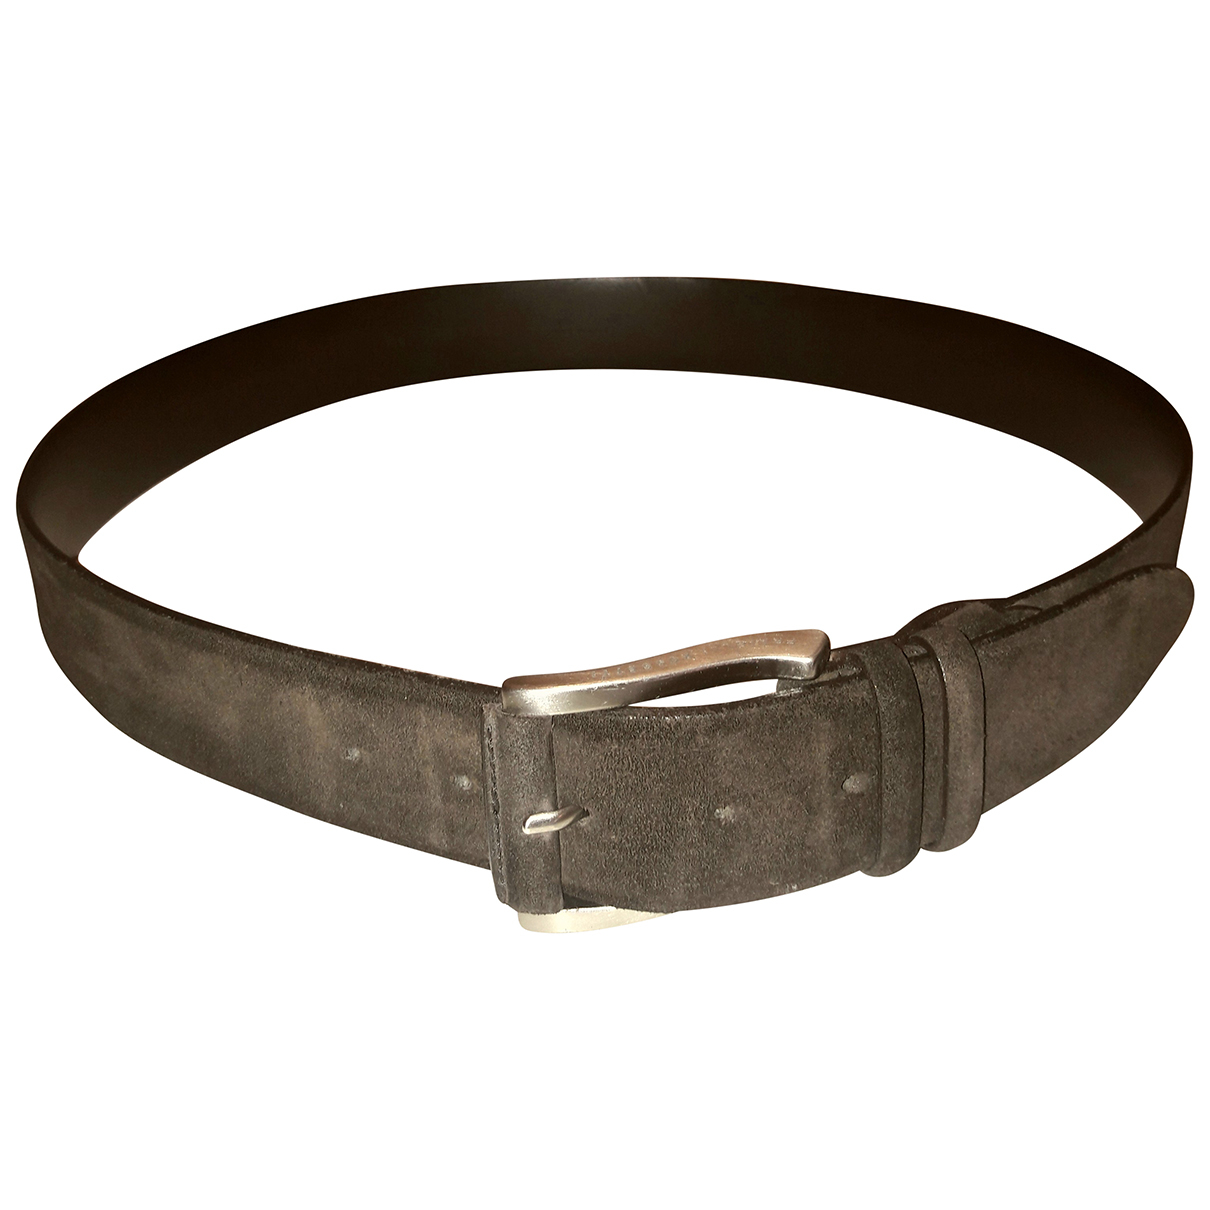 Fratelli Rossetti N Brown Suede belt for Men 100 cm